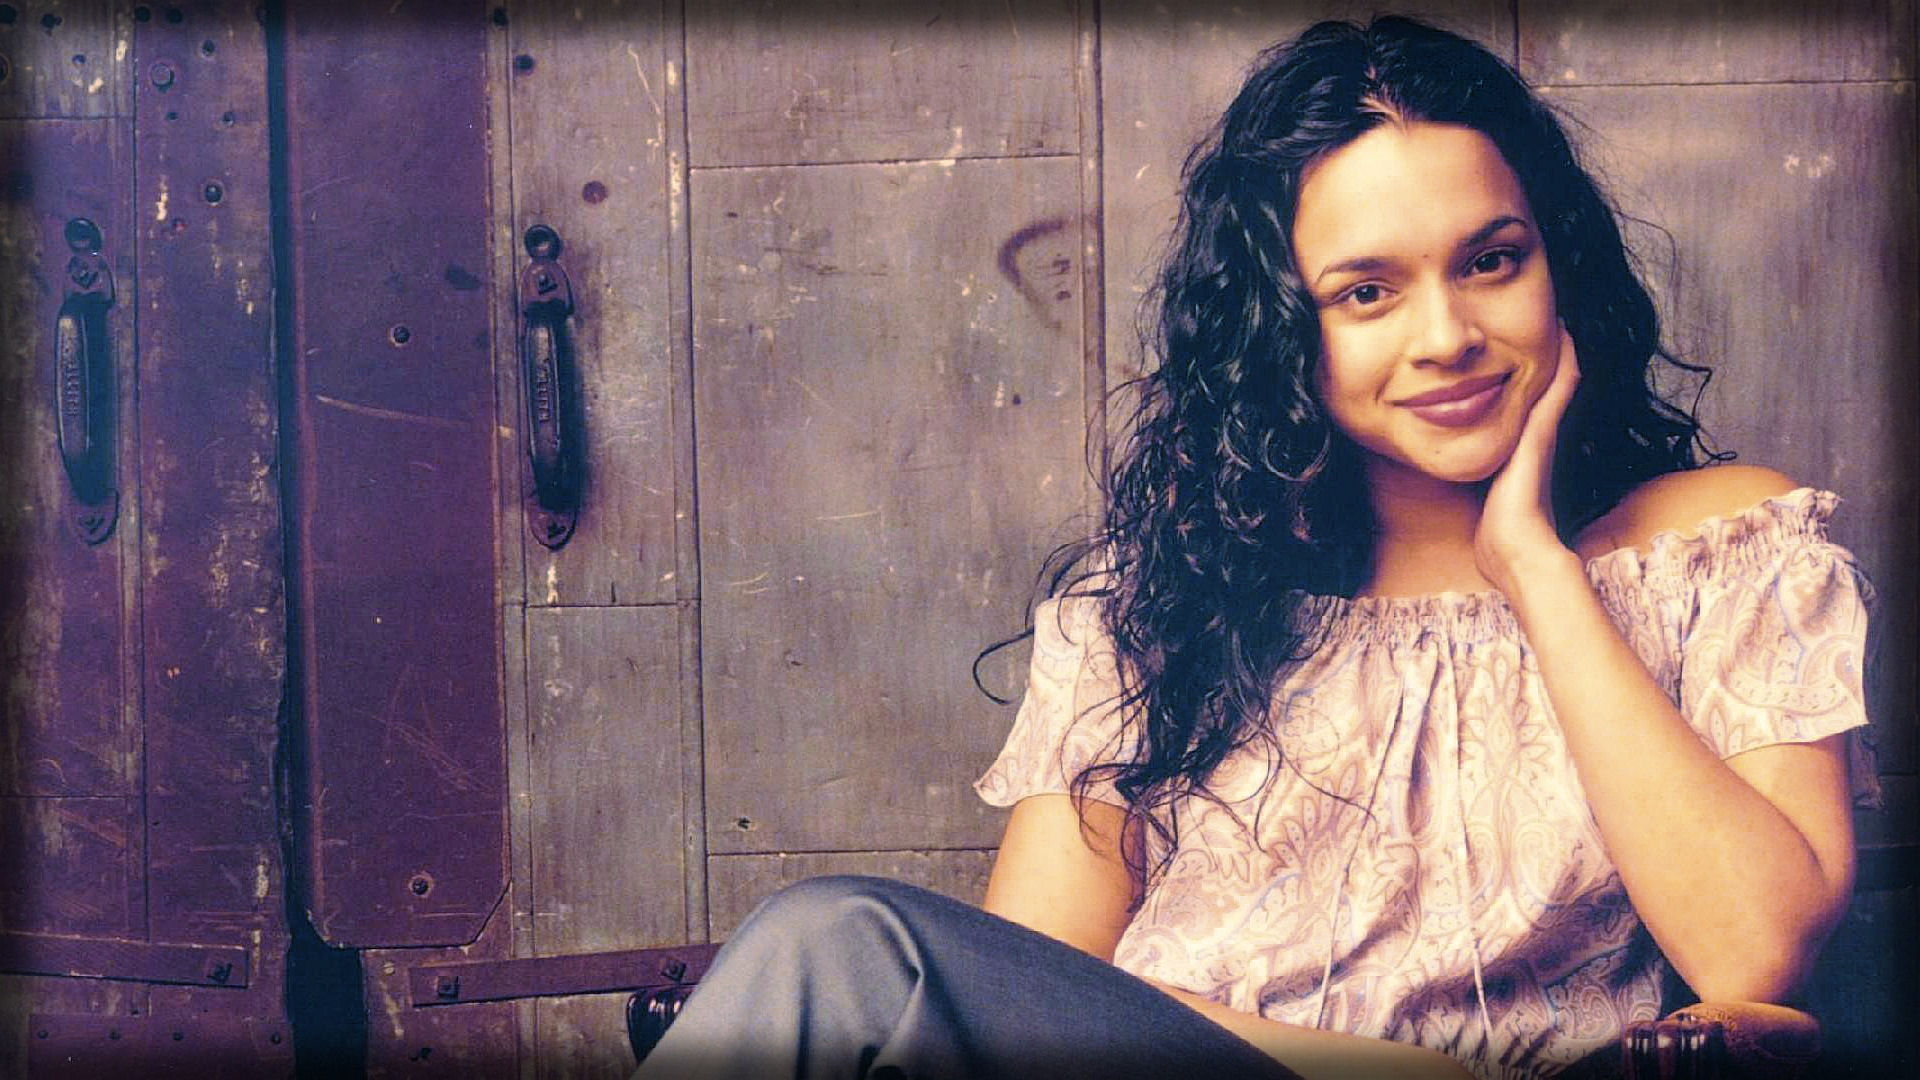 Download Wallpaper 1920x1080 norah jones, haircut, girl, clothes ...